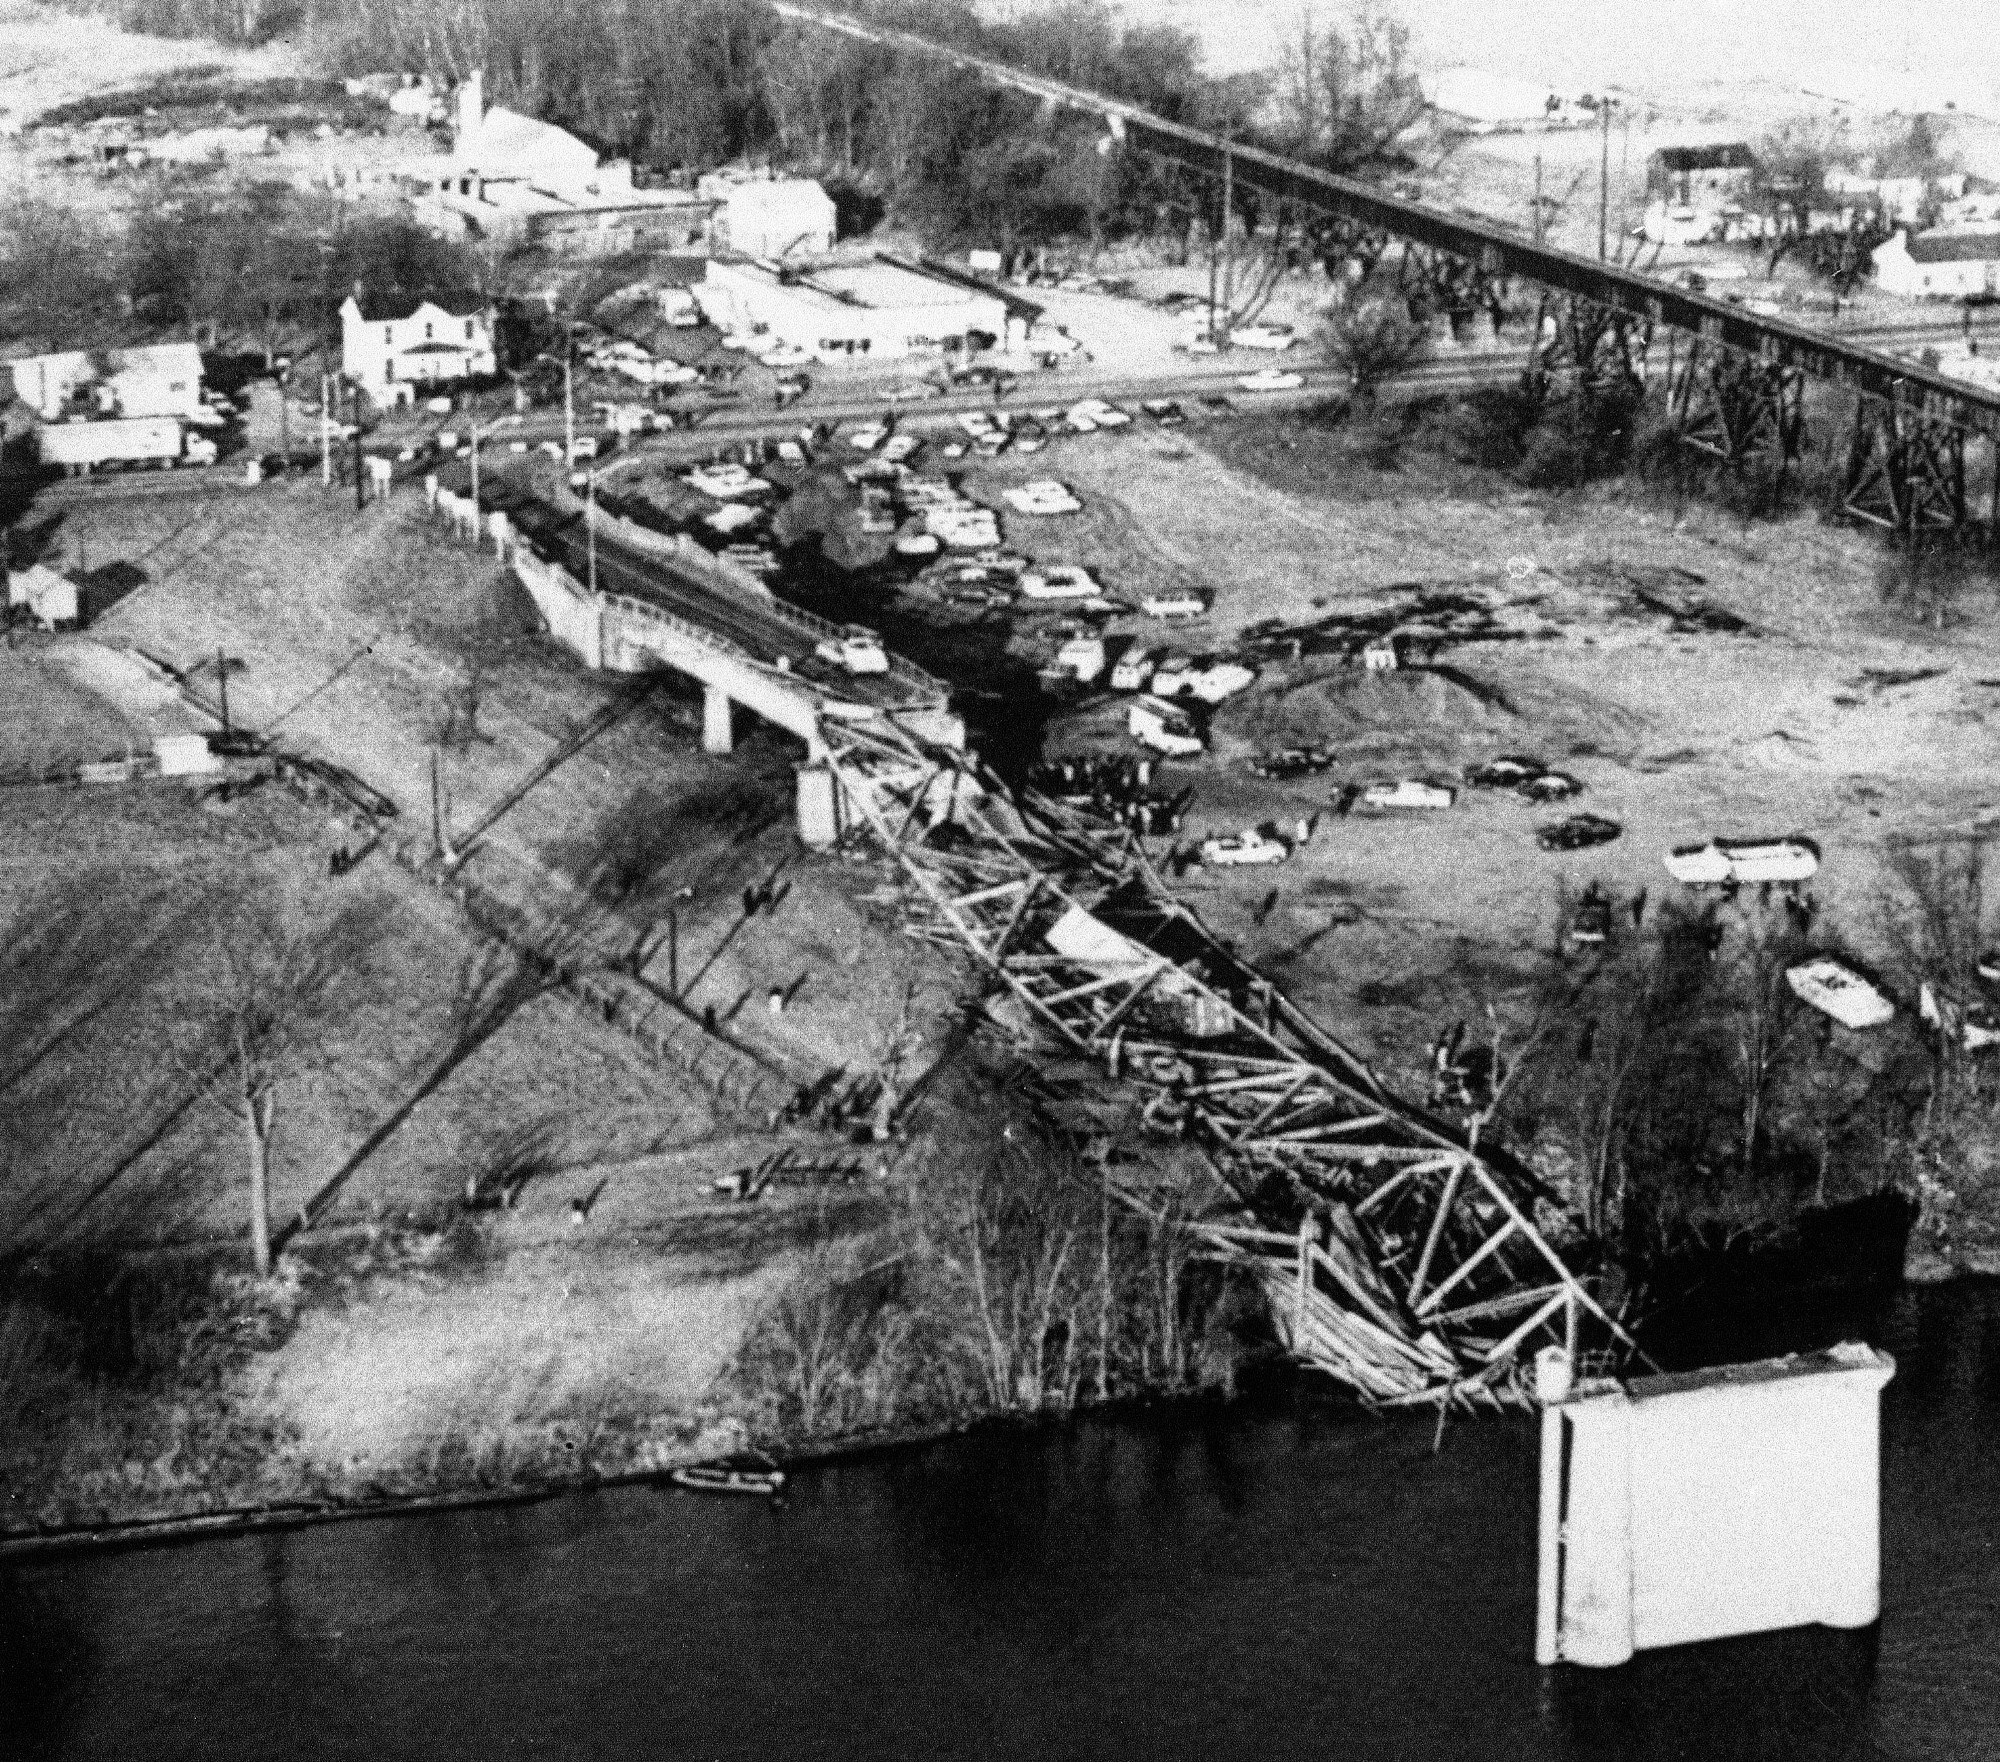 The Deadliest Bridge Disaster In Us History Was Caused By